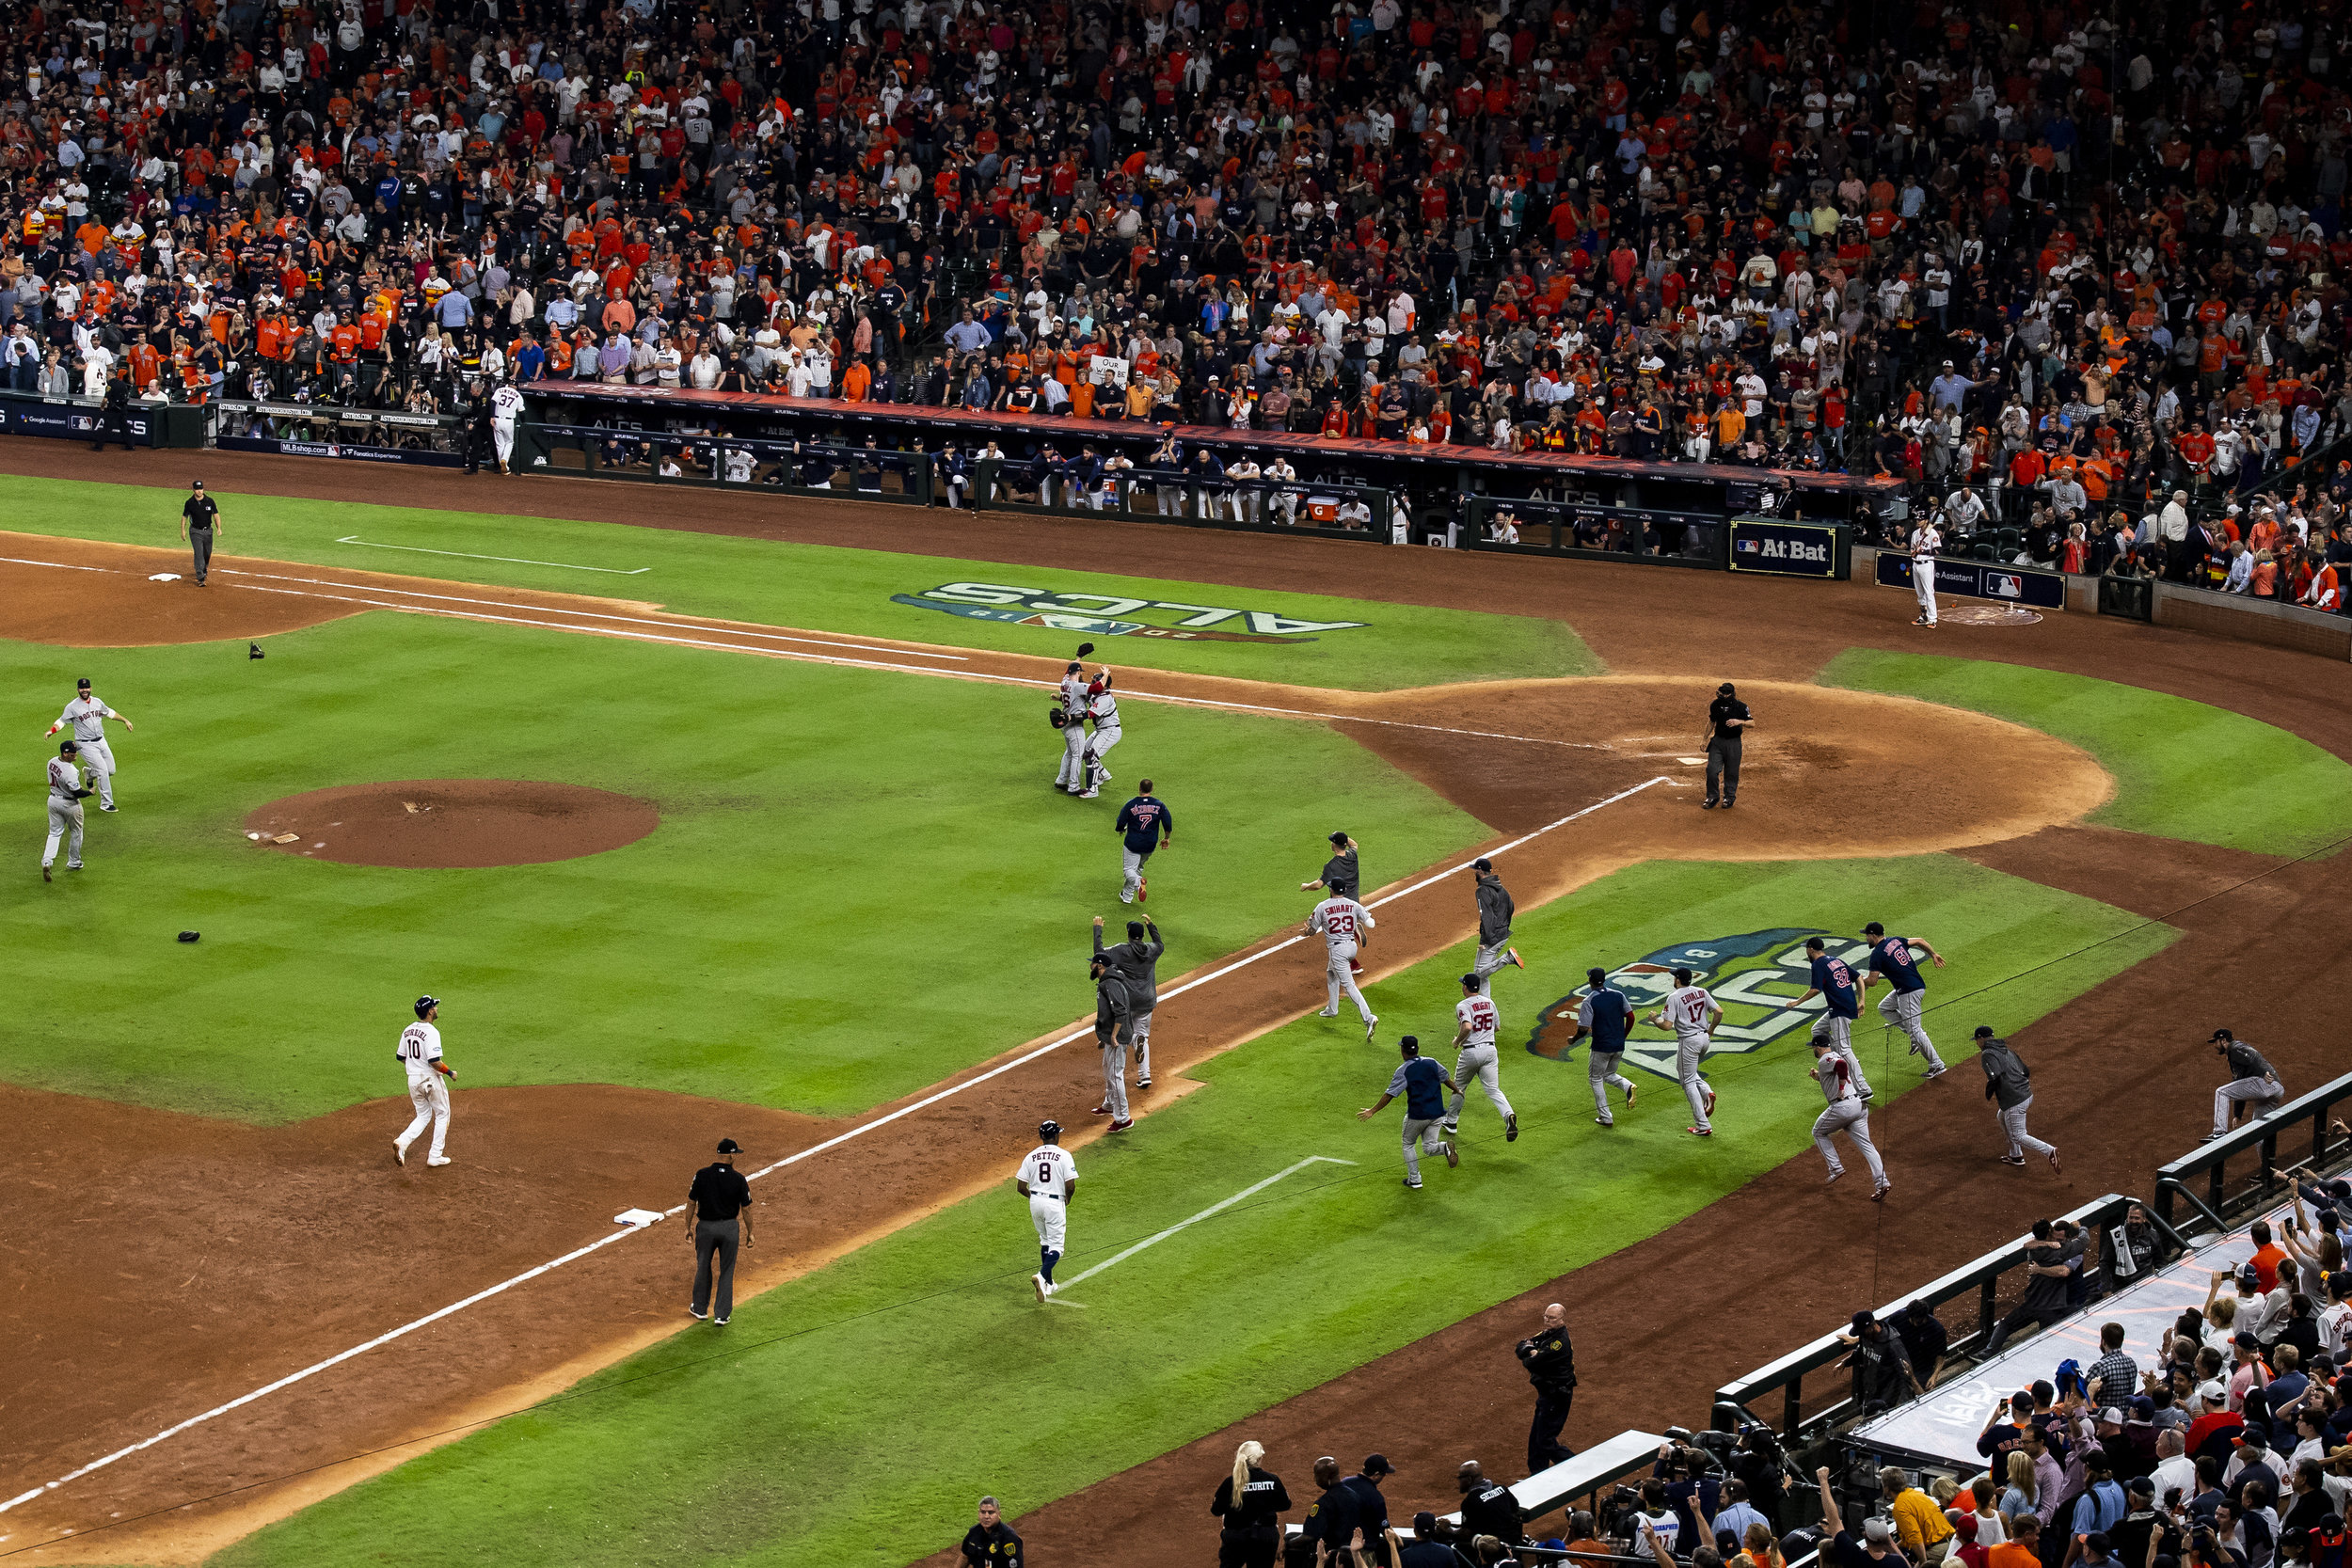 October 18, 2018, Houston, TX: The team rushes onto the field after the Boston Red Sox defeated the Houston Astros in Game 5 of the ALCS to advance to the World Series at Minute Maid Park in Houston, Texas on Thursday, October 18, 2018. (Photo by Matthew Thomas/Boston Red Sox)